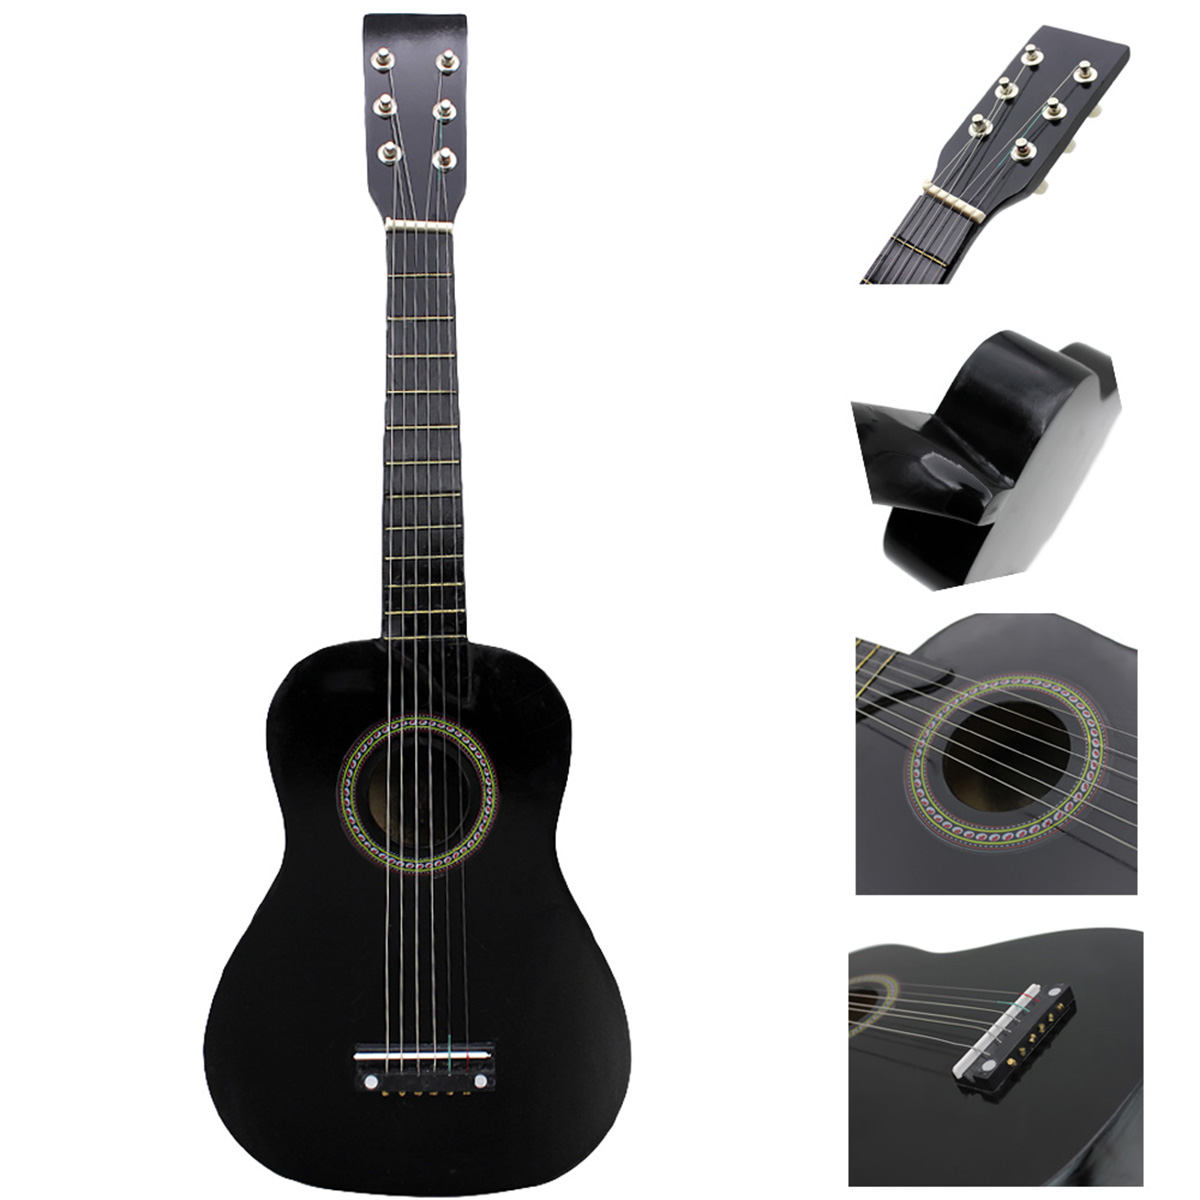 SEWS-IRIN Mini 23 Inch Basswood 12 Frets 6 String Acoustic Guitar With Pick And Strings For Kids / Beginners